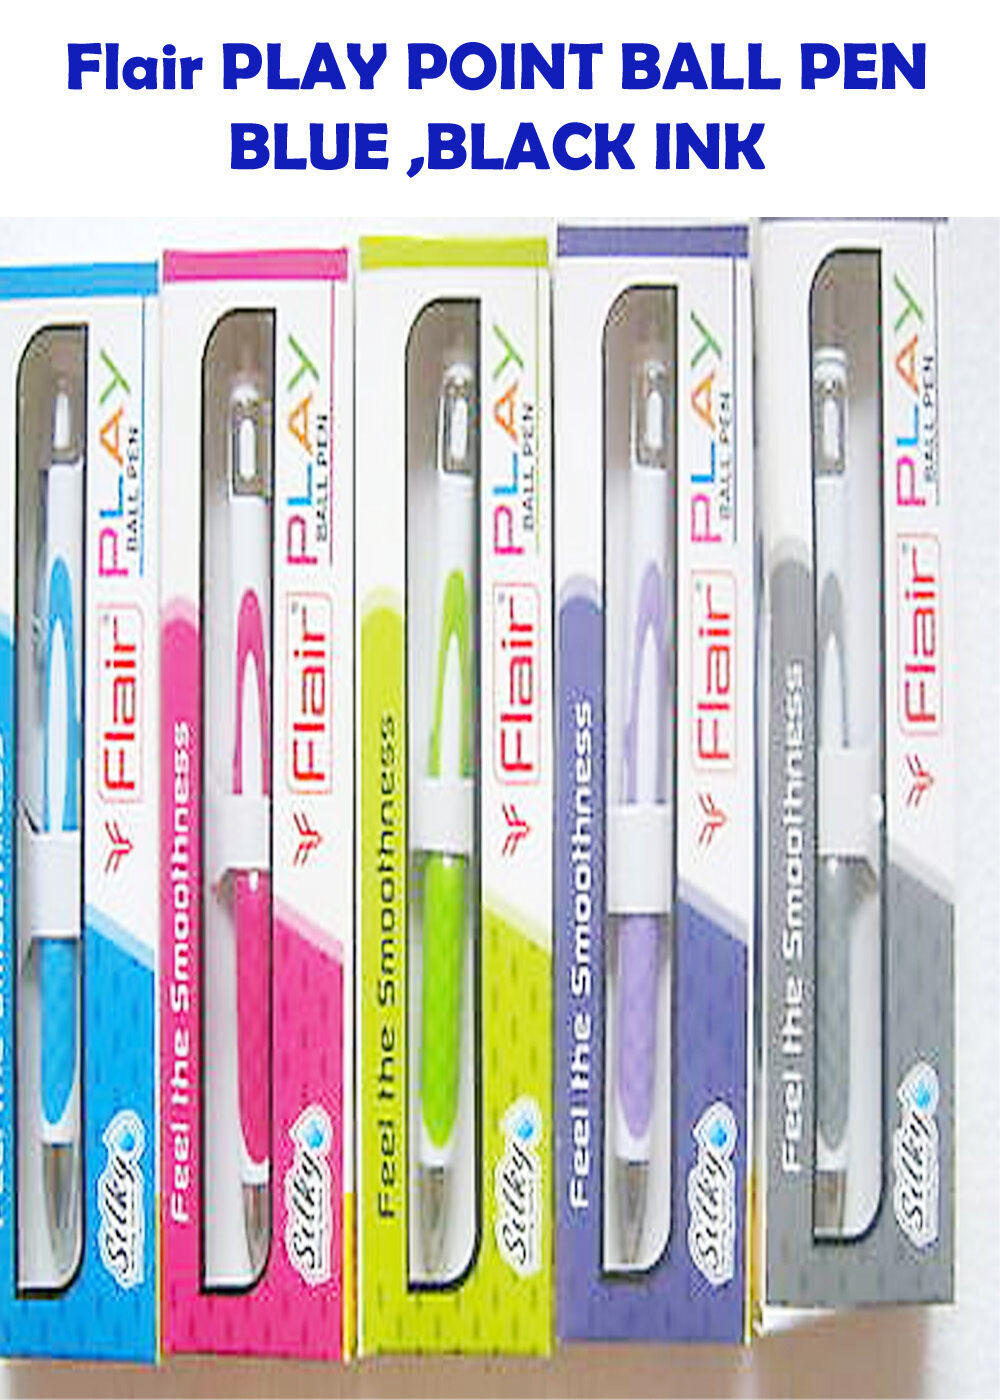 Flair PLAY POINT BALL PEN blueE INK MIX BODY COLOR 30+5=35pcs